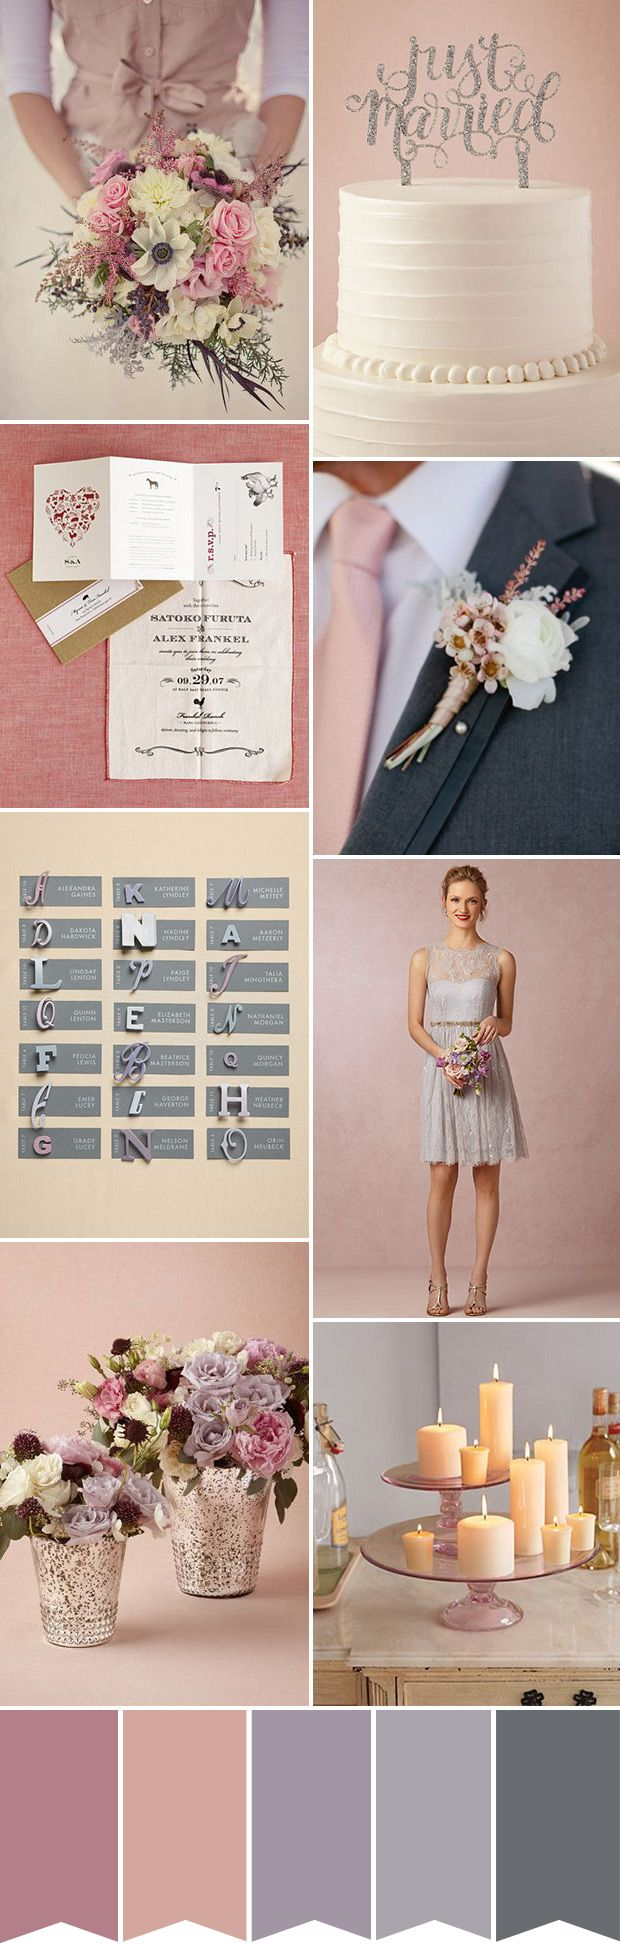 wedding colour palette with shades of soft pink and peach and subtle hints of dusky lavender and grey... maybe a bit more vibrant for our wedding